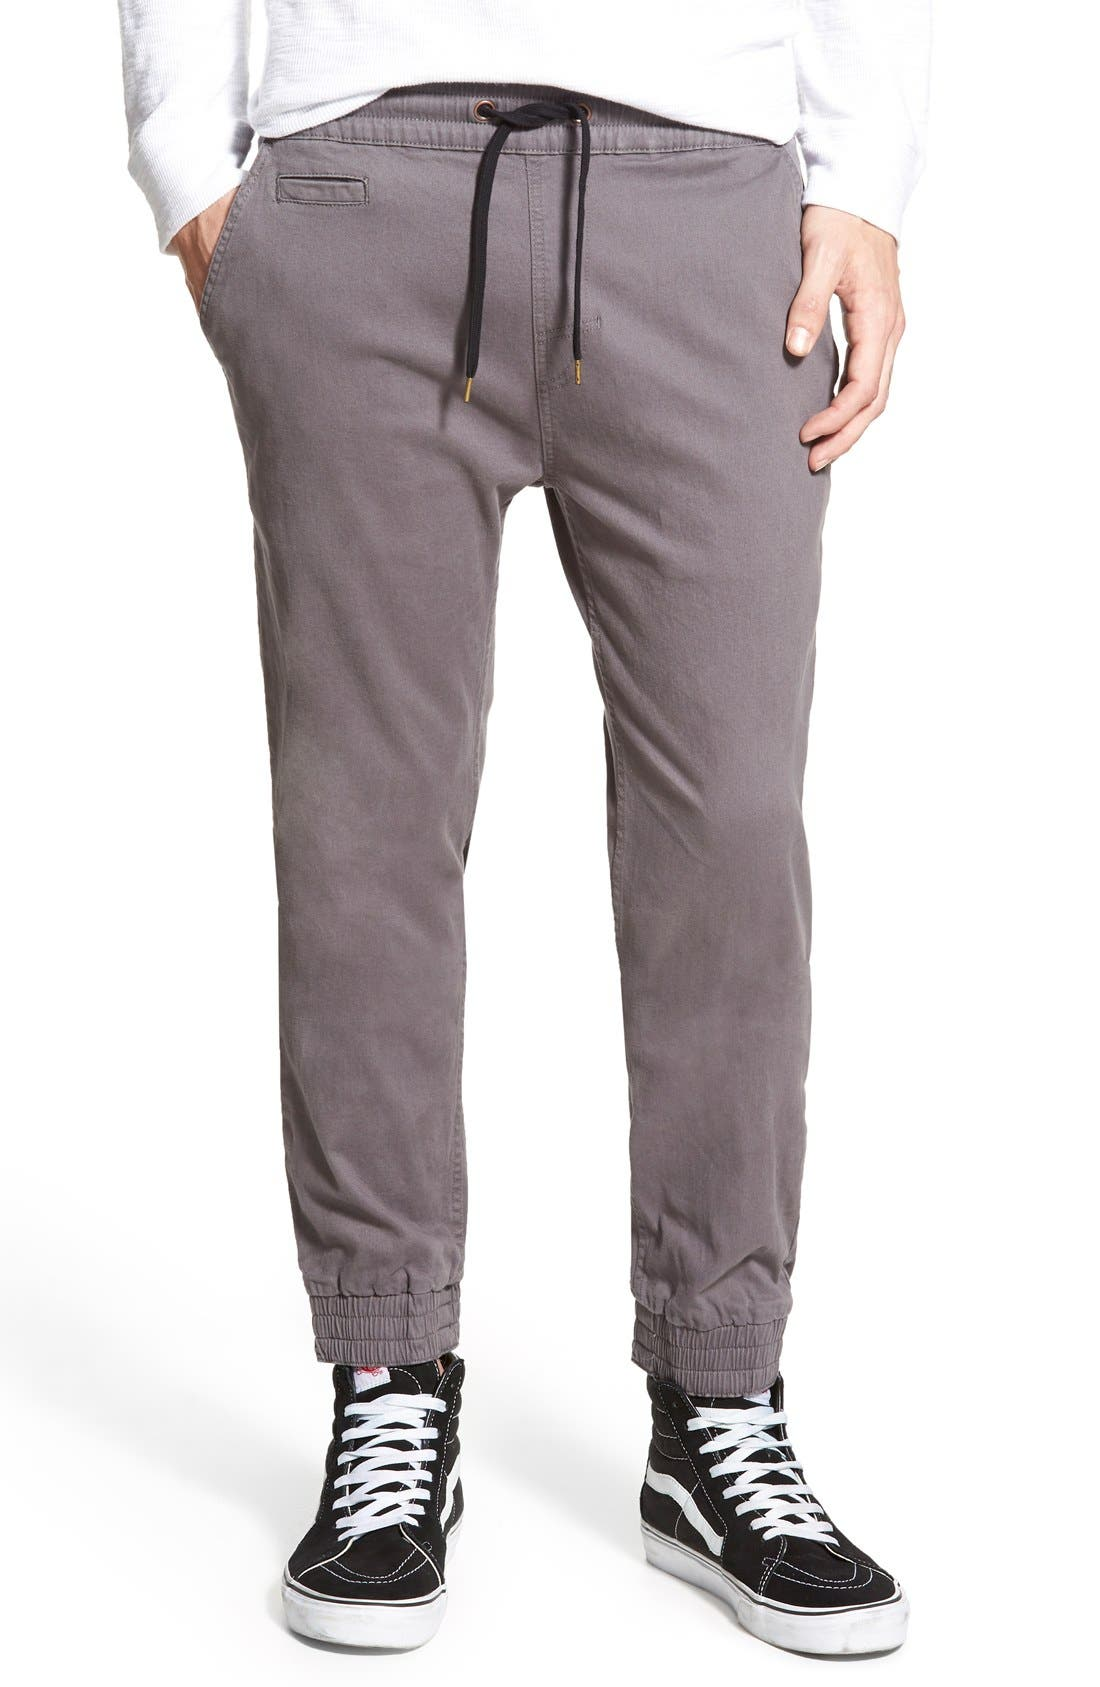 Alternate Image 1 Selected - Imperial Motion 'Denny' Woven Jogger Pants